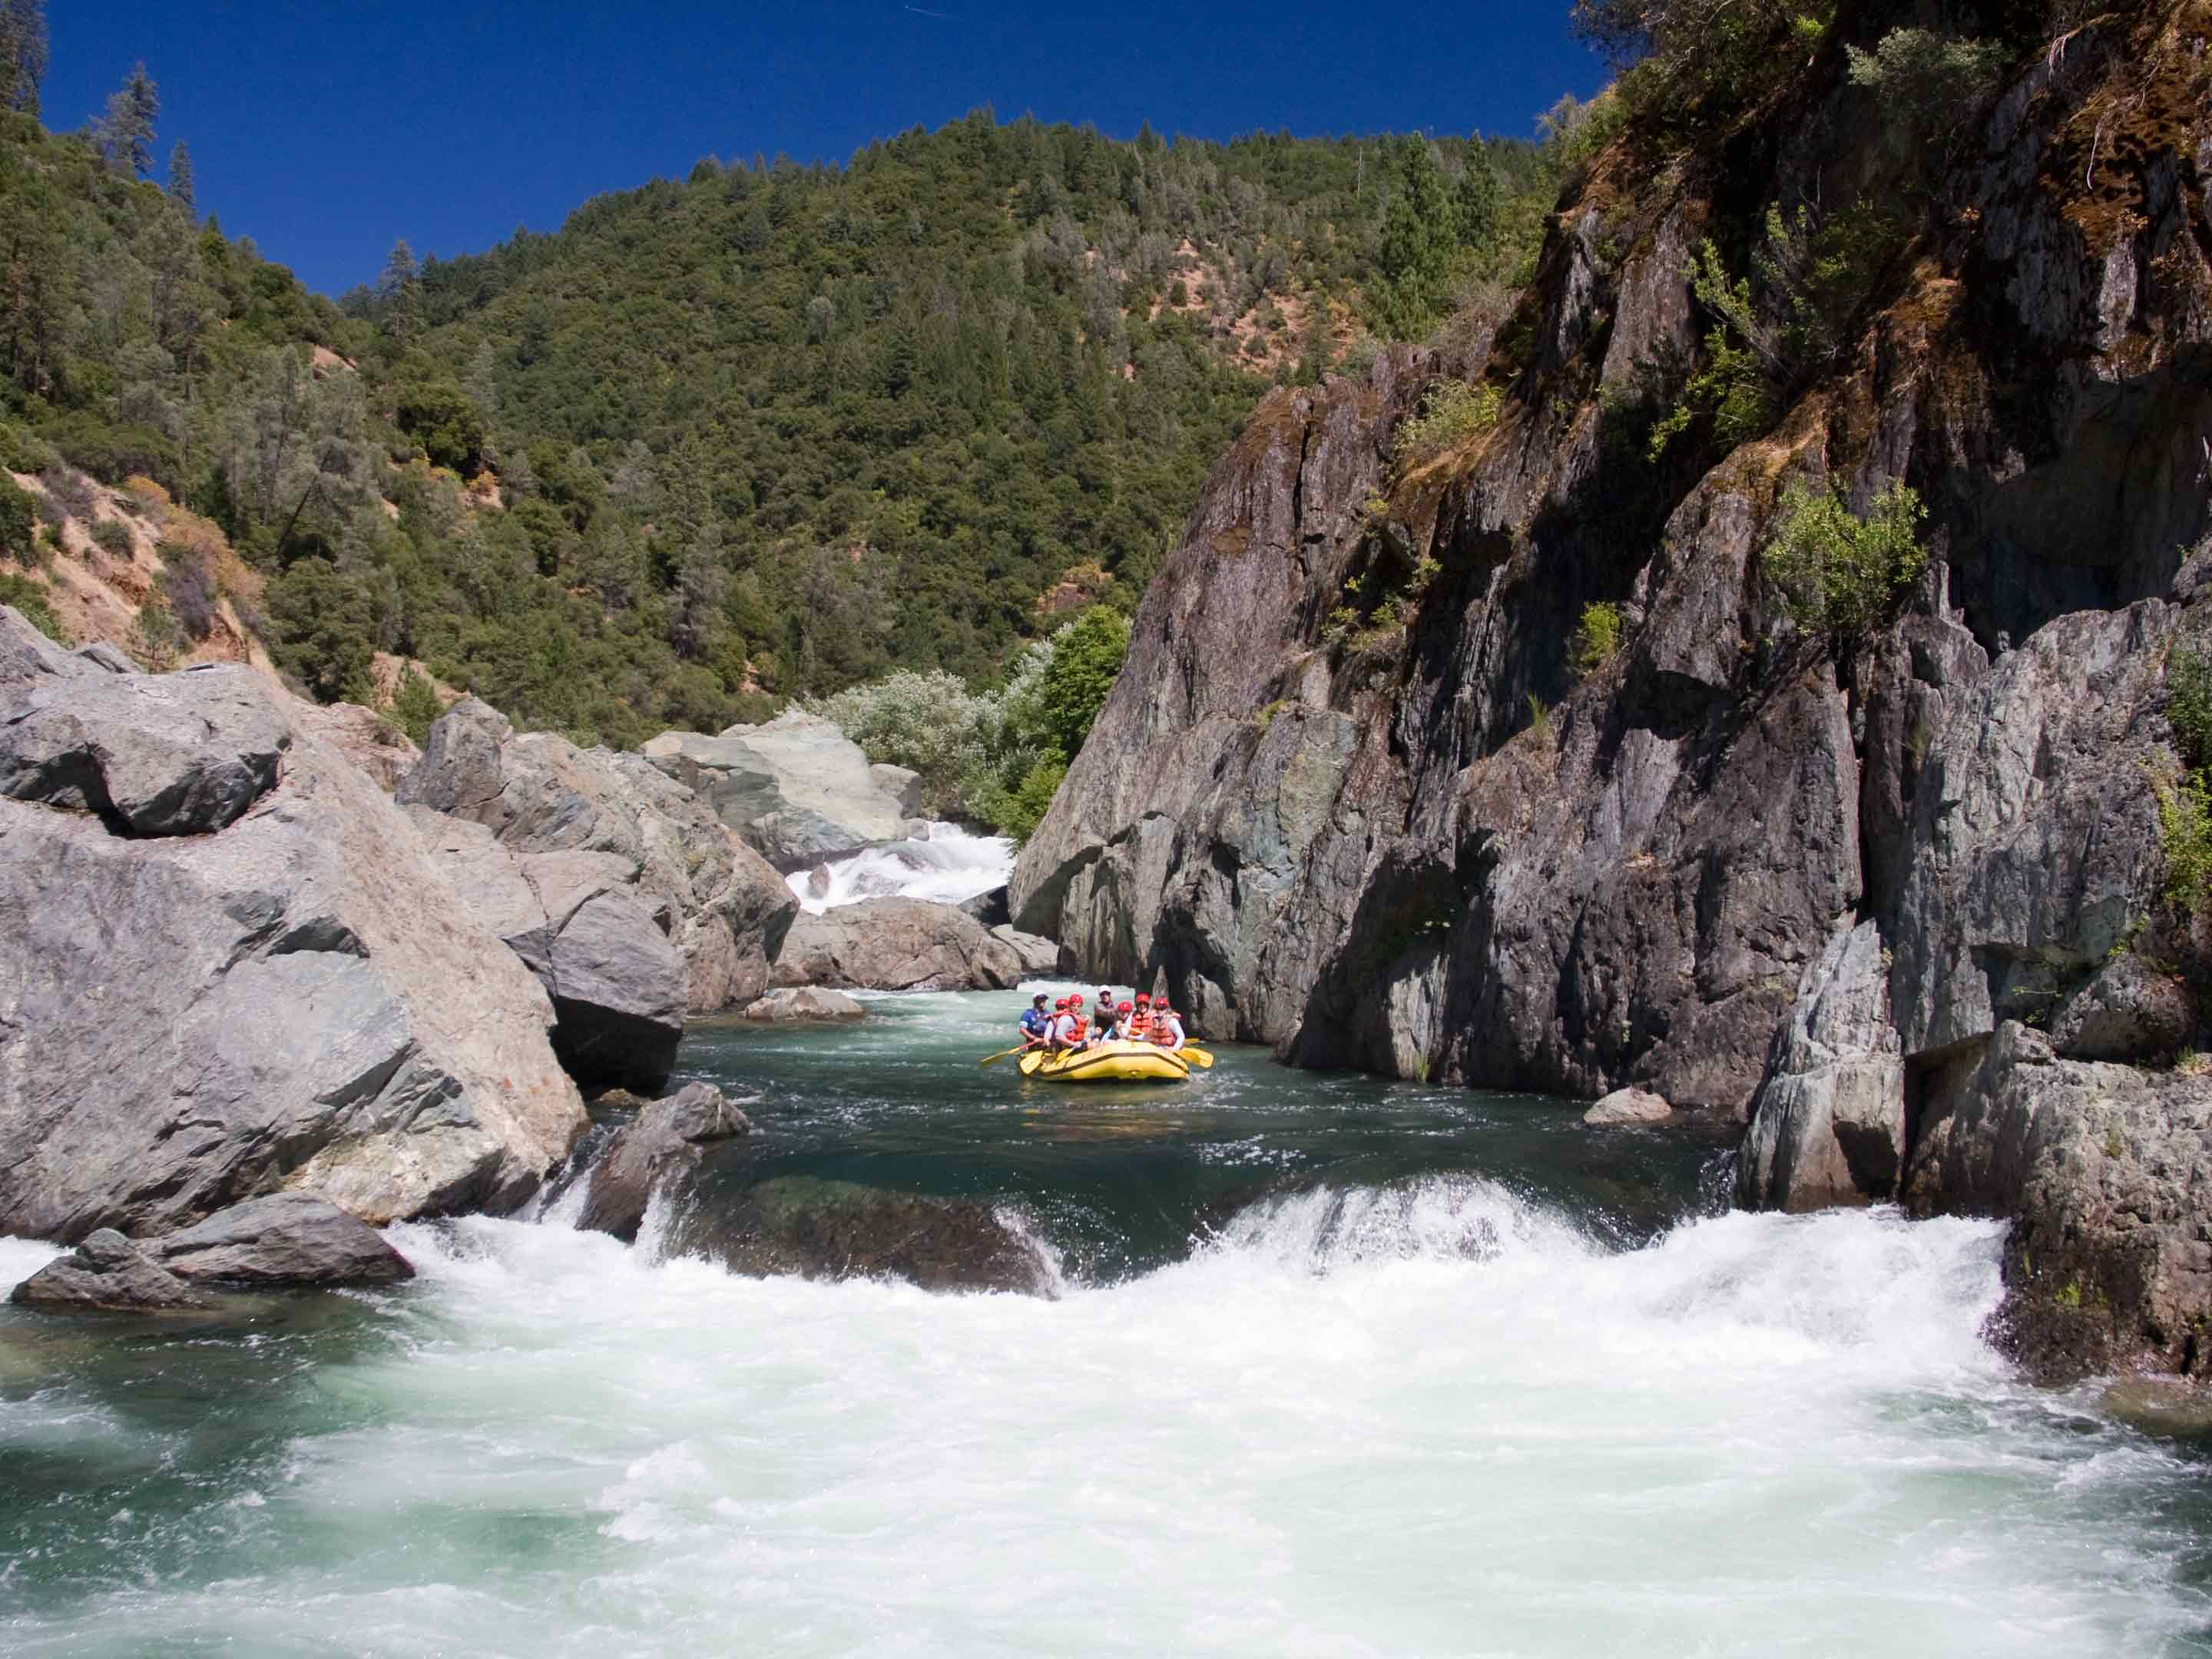 Youth River Rafting on the American River